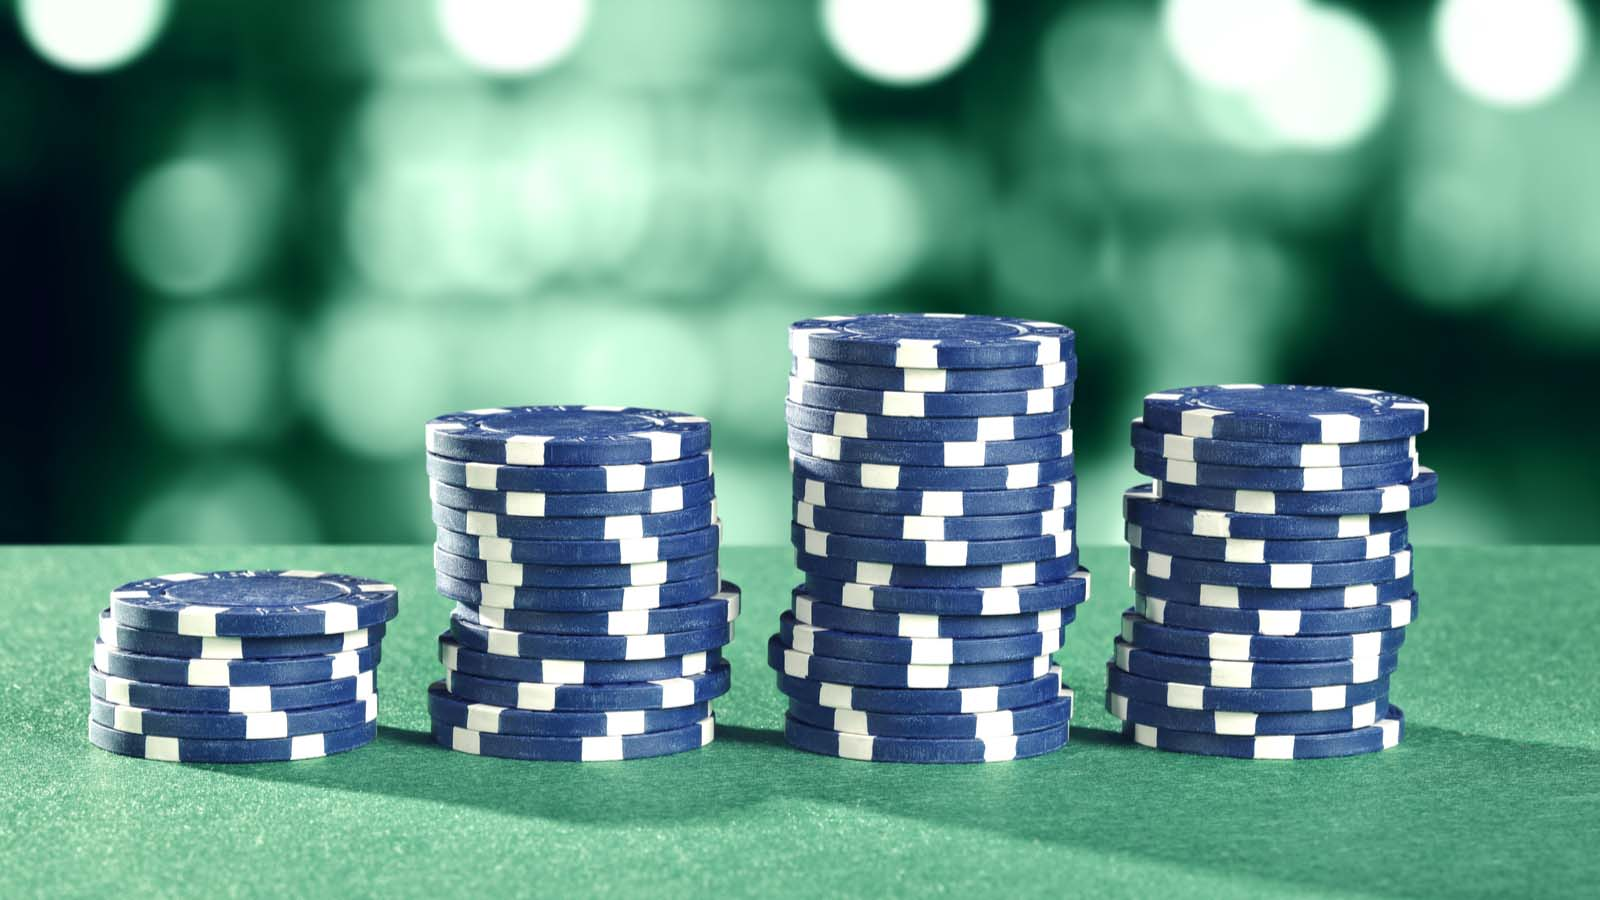 5 Sports-Betting Stocks to Buy for Some Casino Cash | InvestorPlace